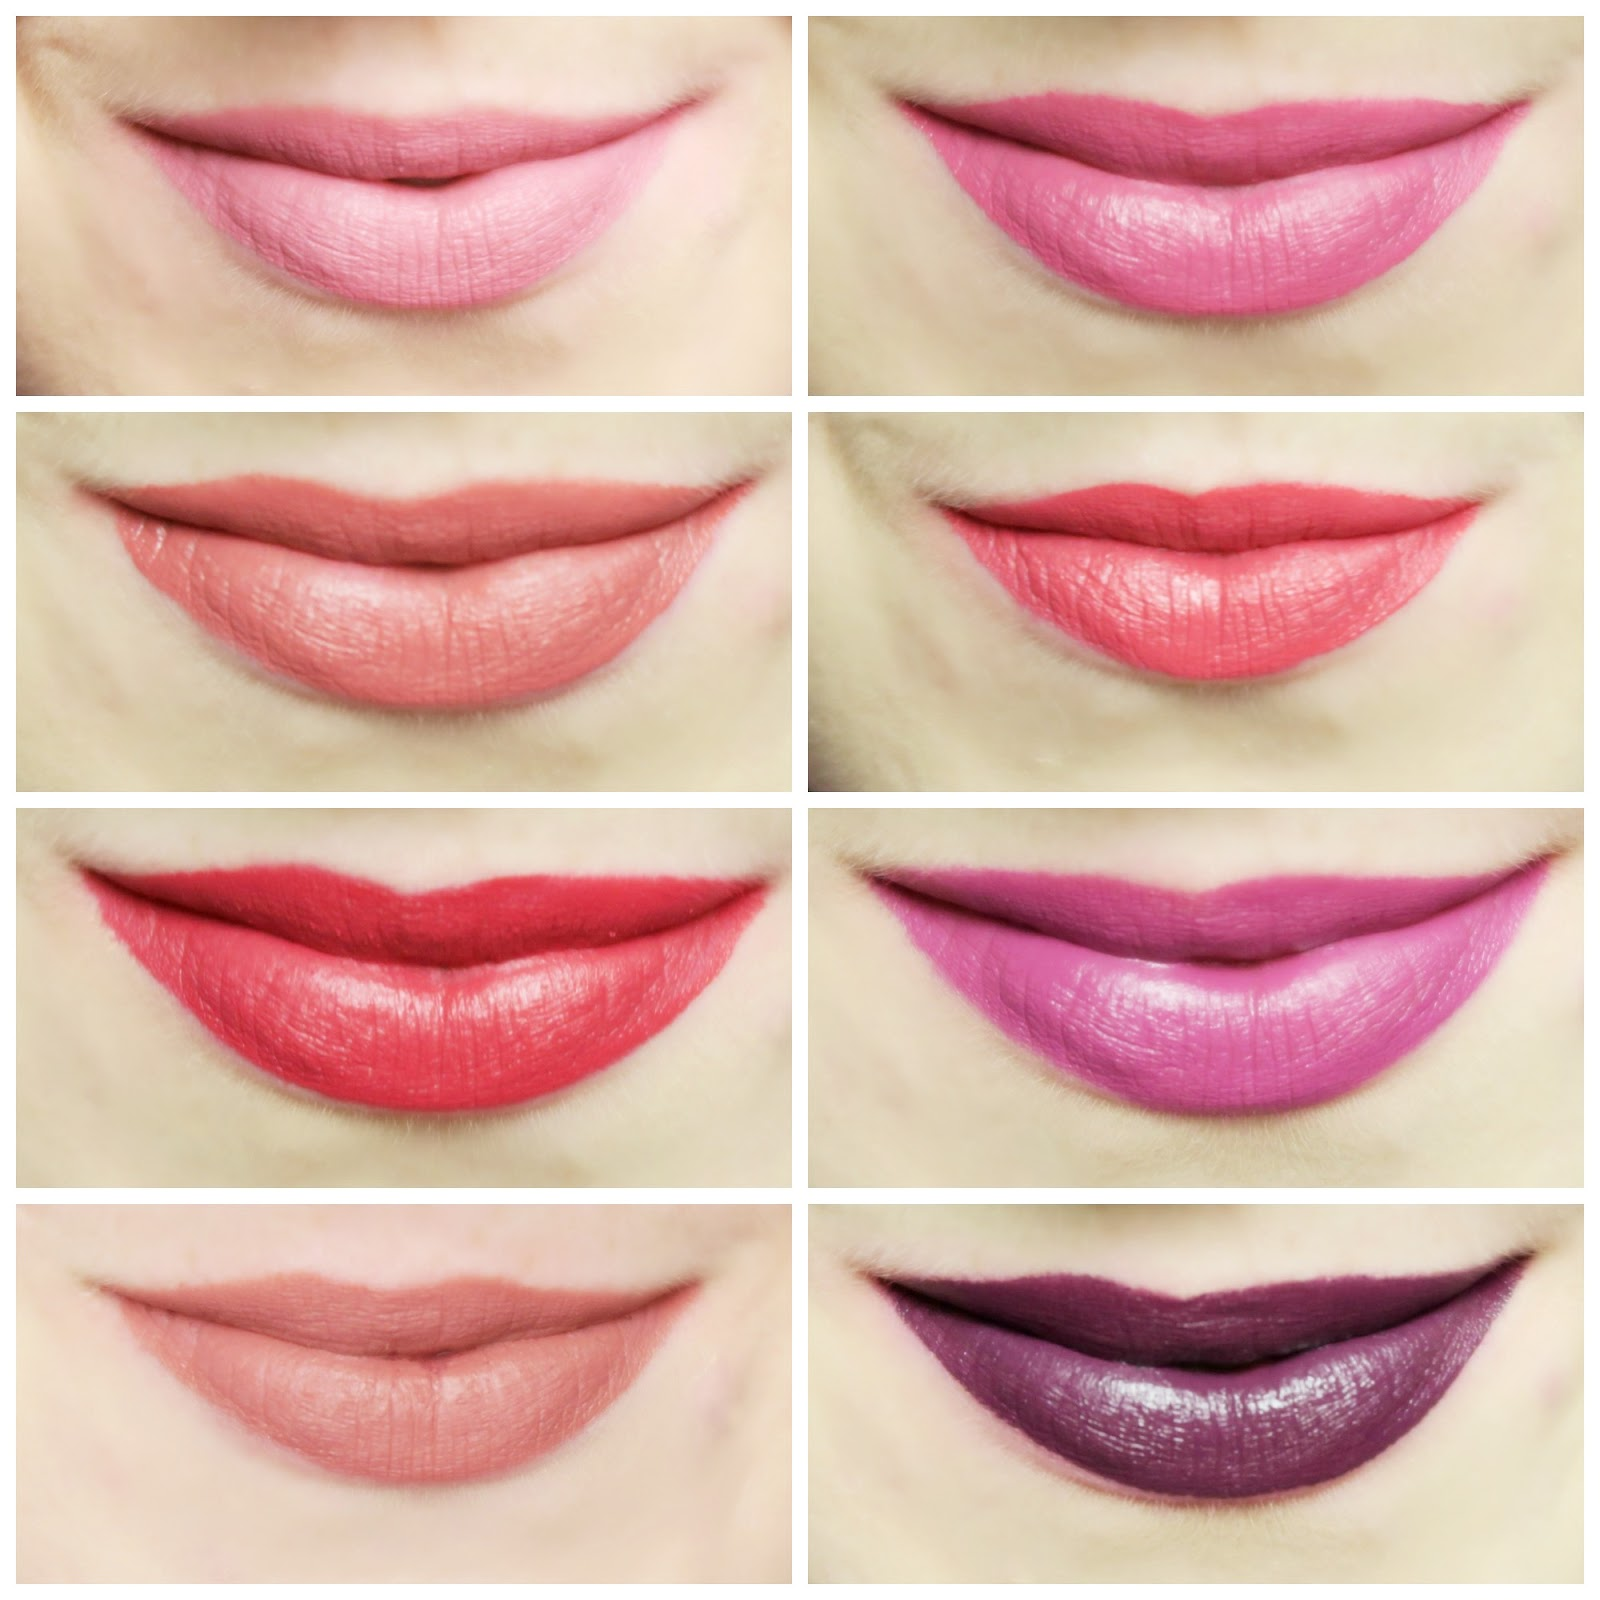 an image of GOSH Liquid Matte Lips swatches